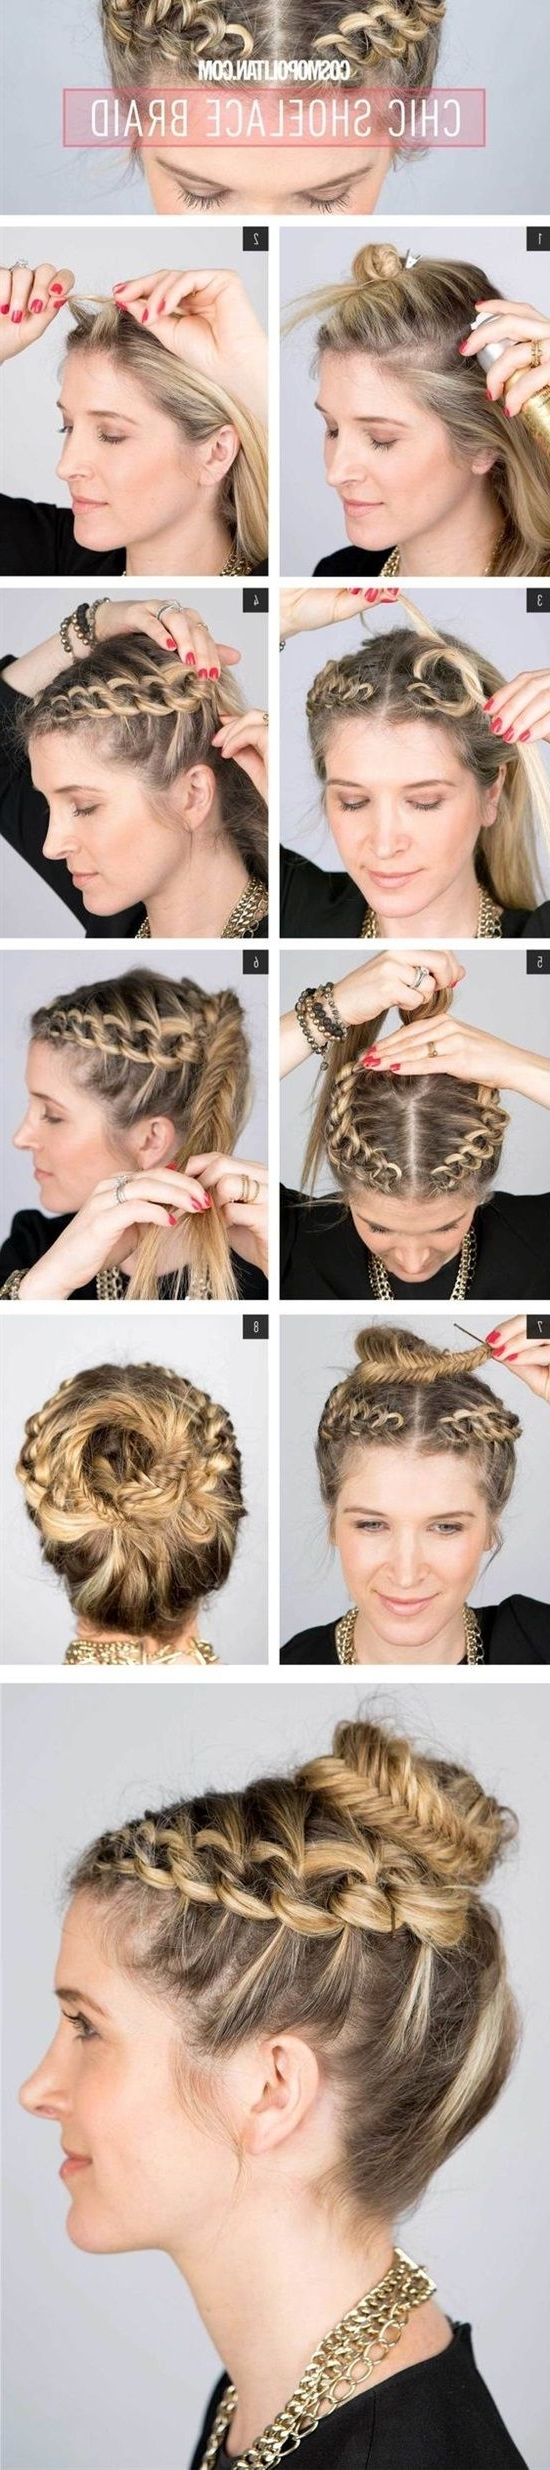 756 Best Beauty Images On Pinterest | Make Up Looks, Hair Dos And With Regard To Easy Updo Hairstyles For Long Thin Hair (Gallery 13 of 15)